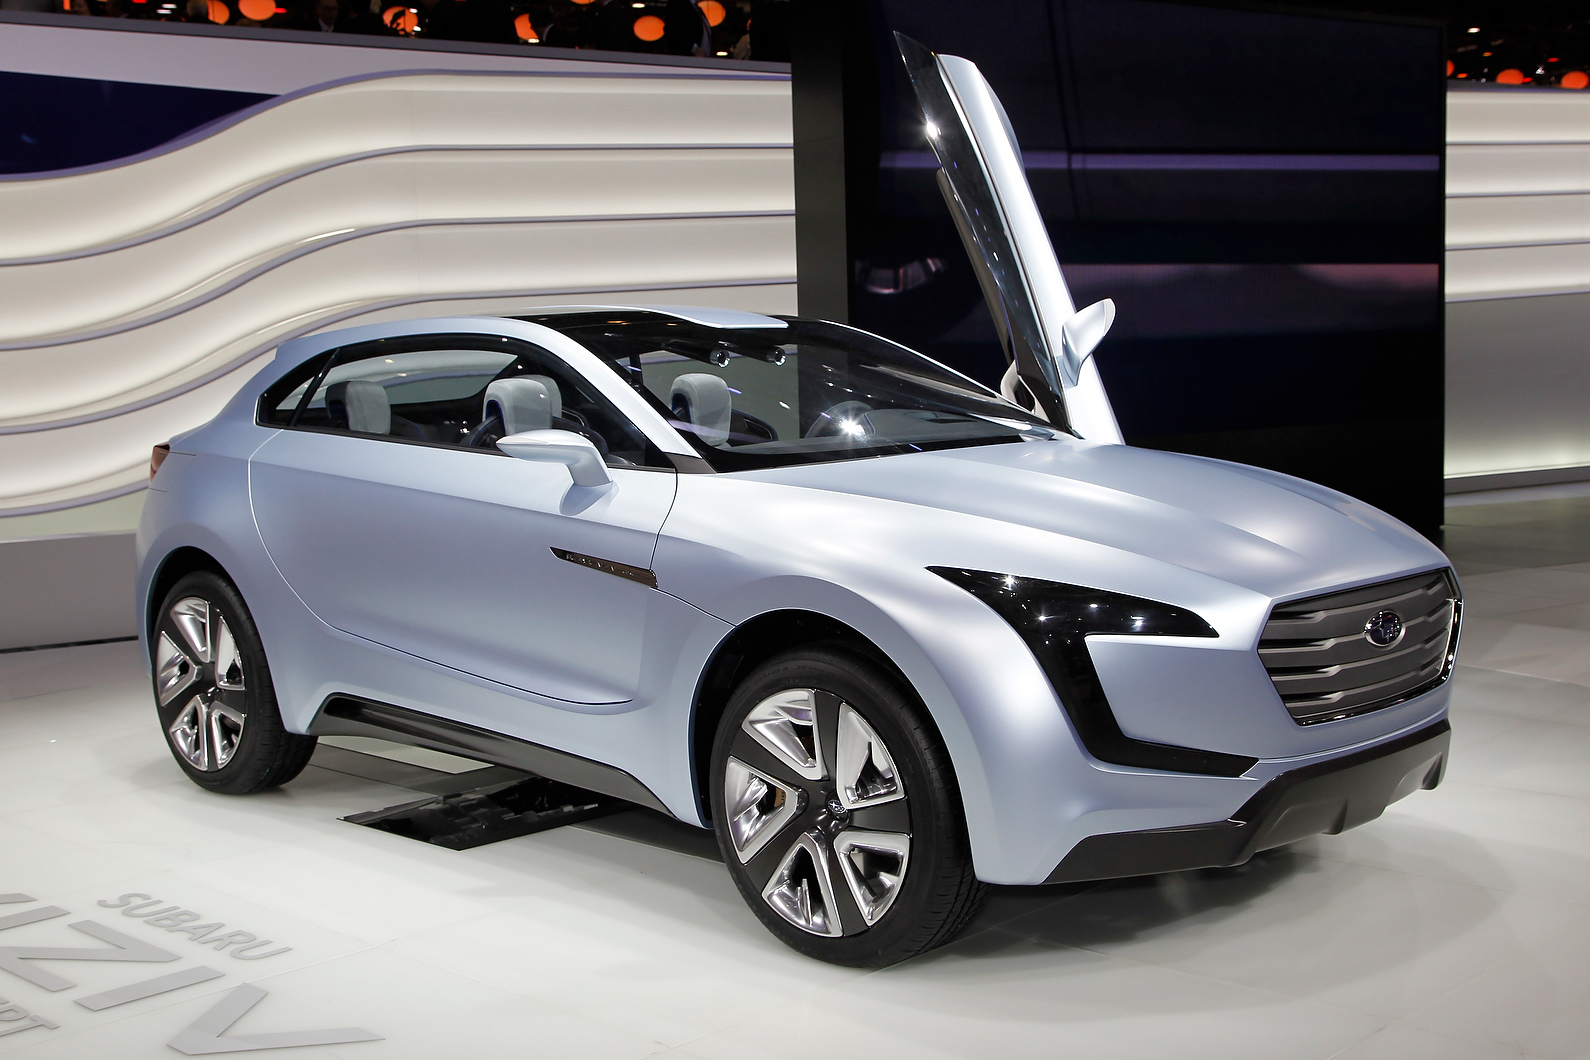 This is the Subaru Viziv concept. It hints at future design language and hybrid powertrain technology for the brand.